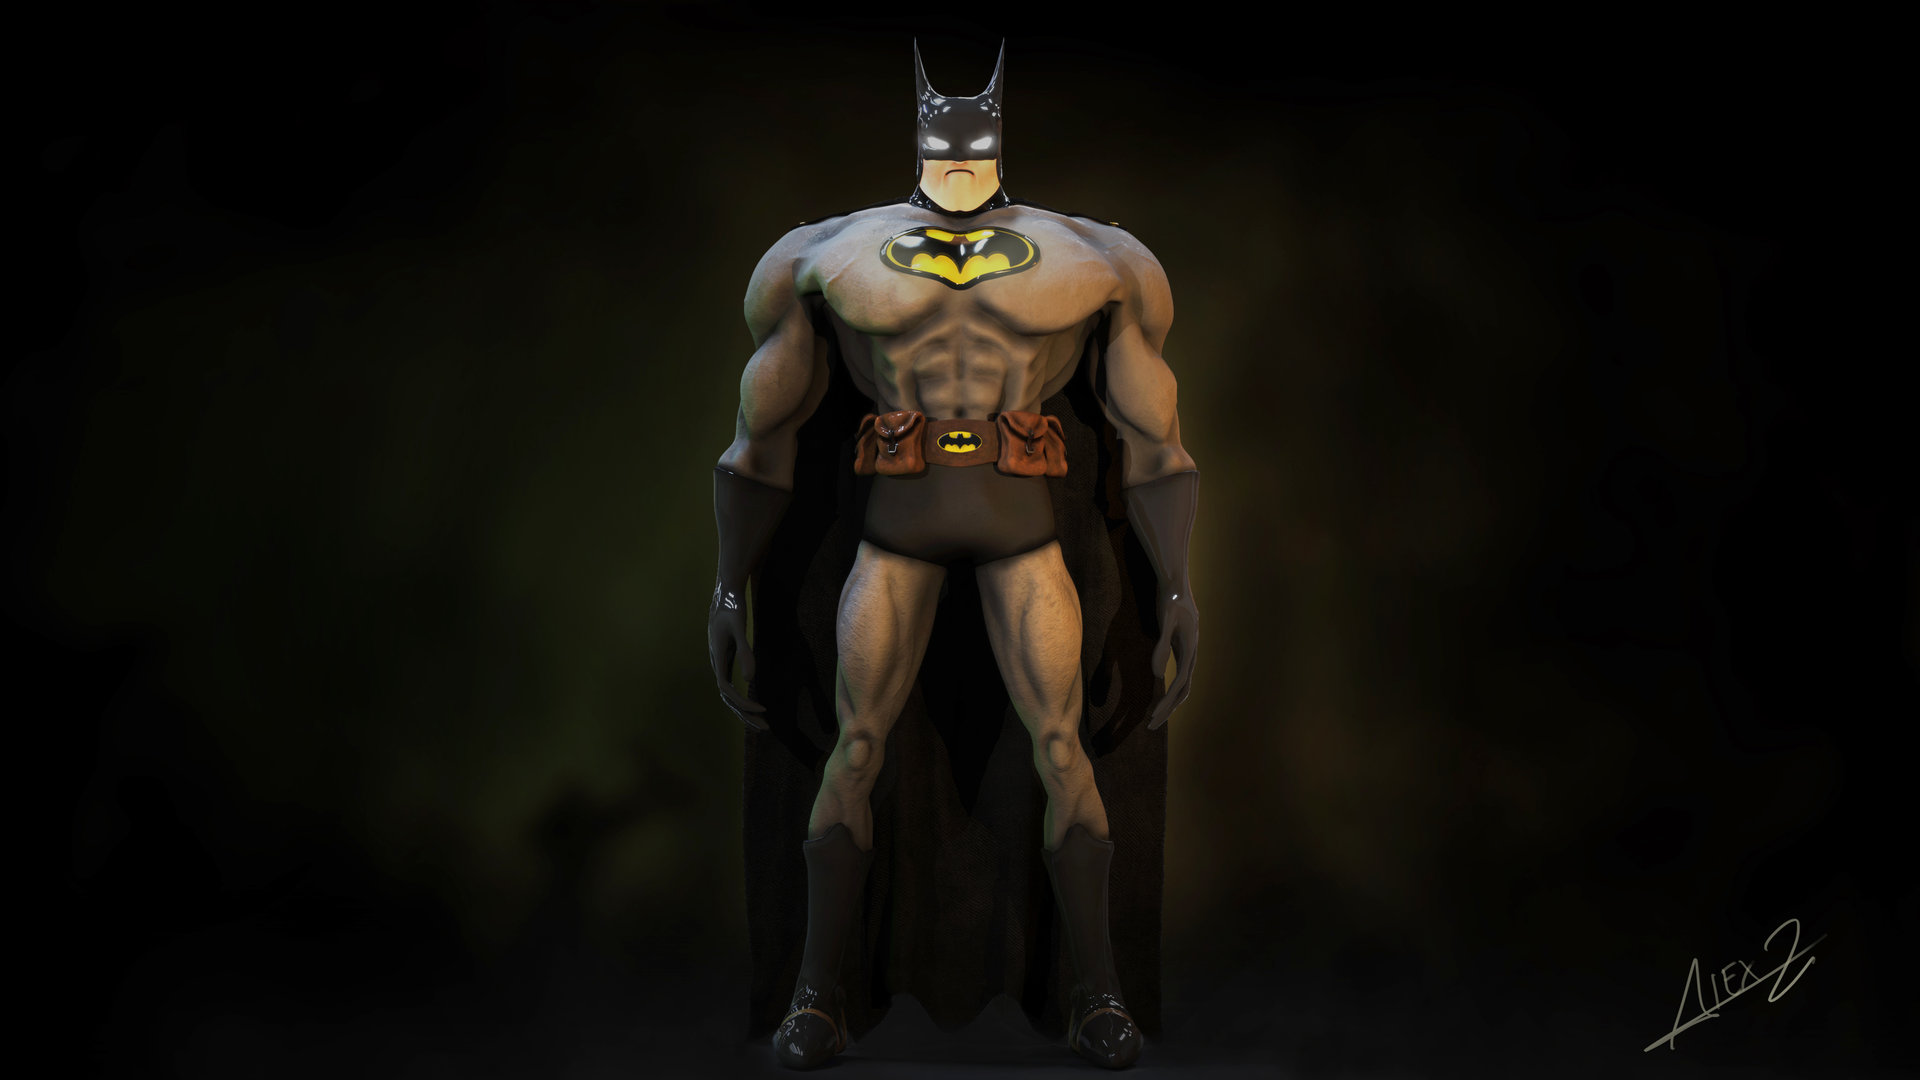 Alex zacares batman comp4